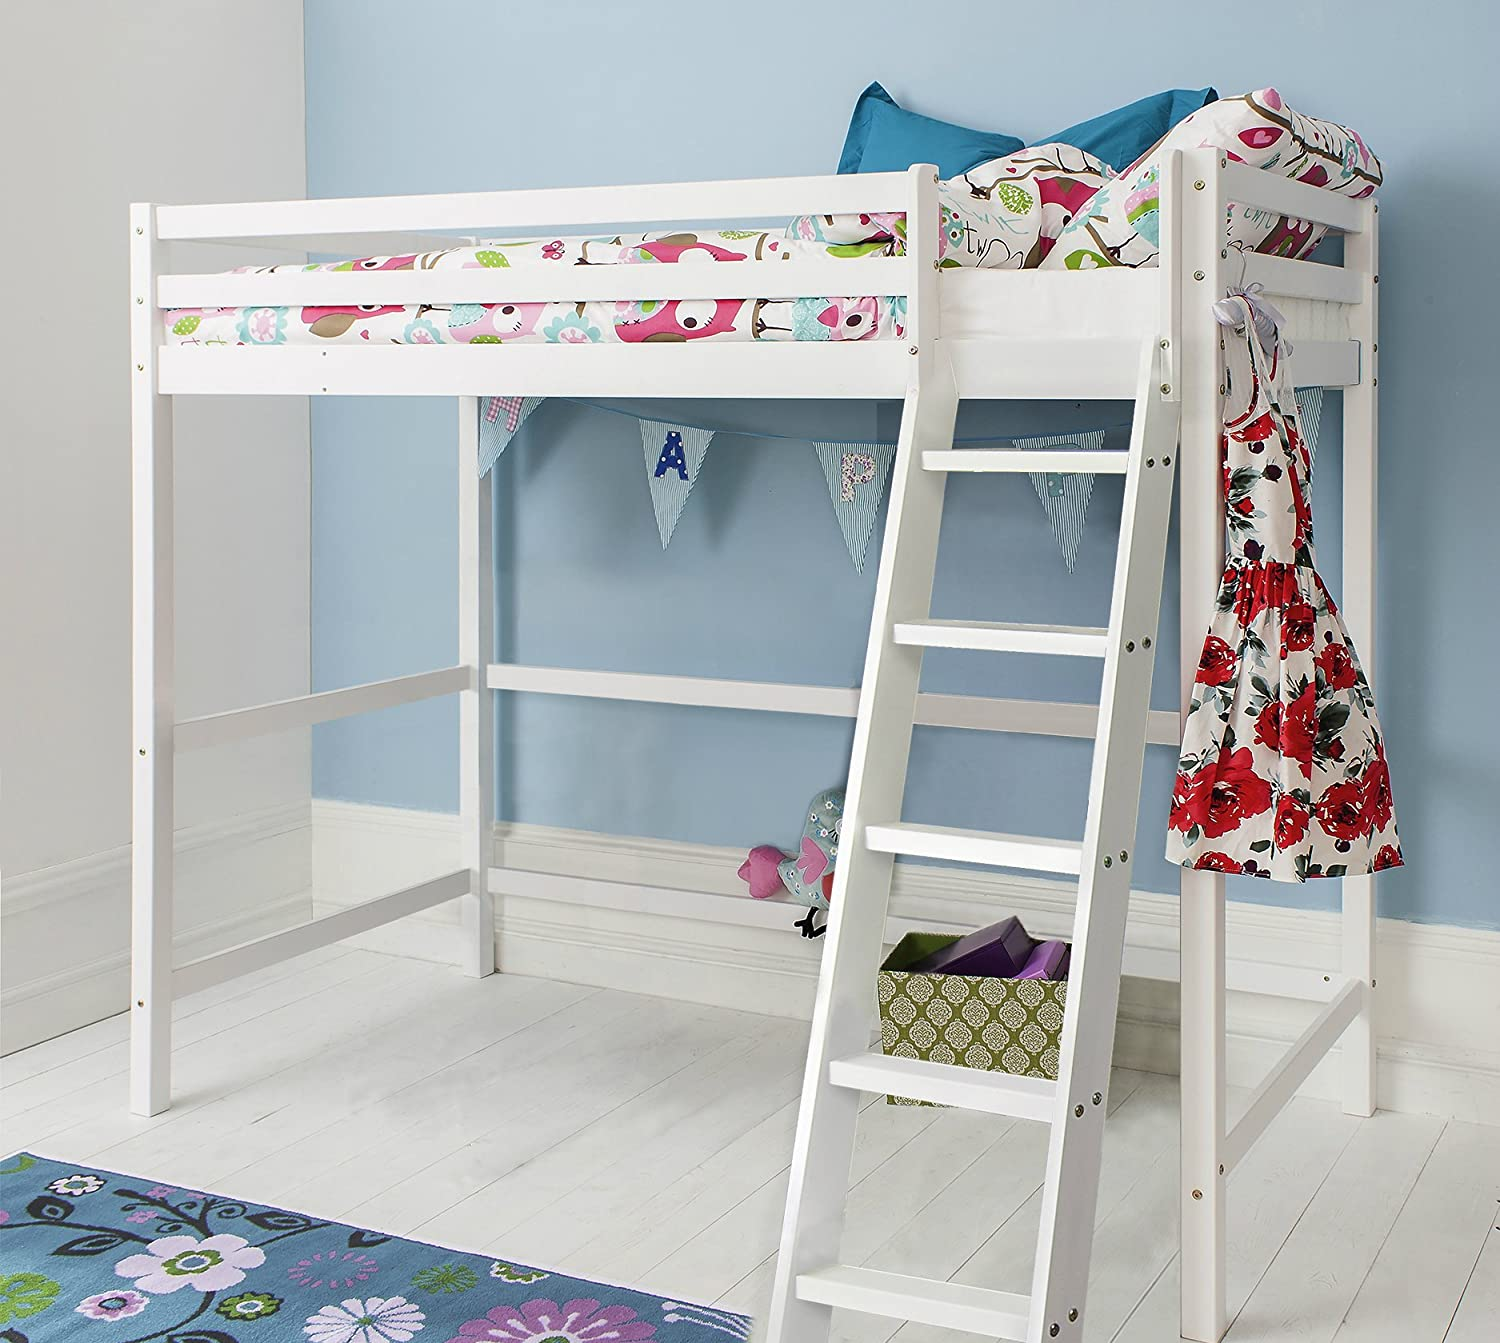 Cabin Bed High Sleeper In White Kids Bed Texas Noa U0026 Nani: Amazon.co.uk:  Kitchen U0026 Home